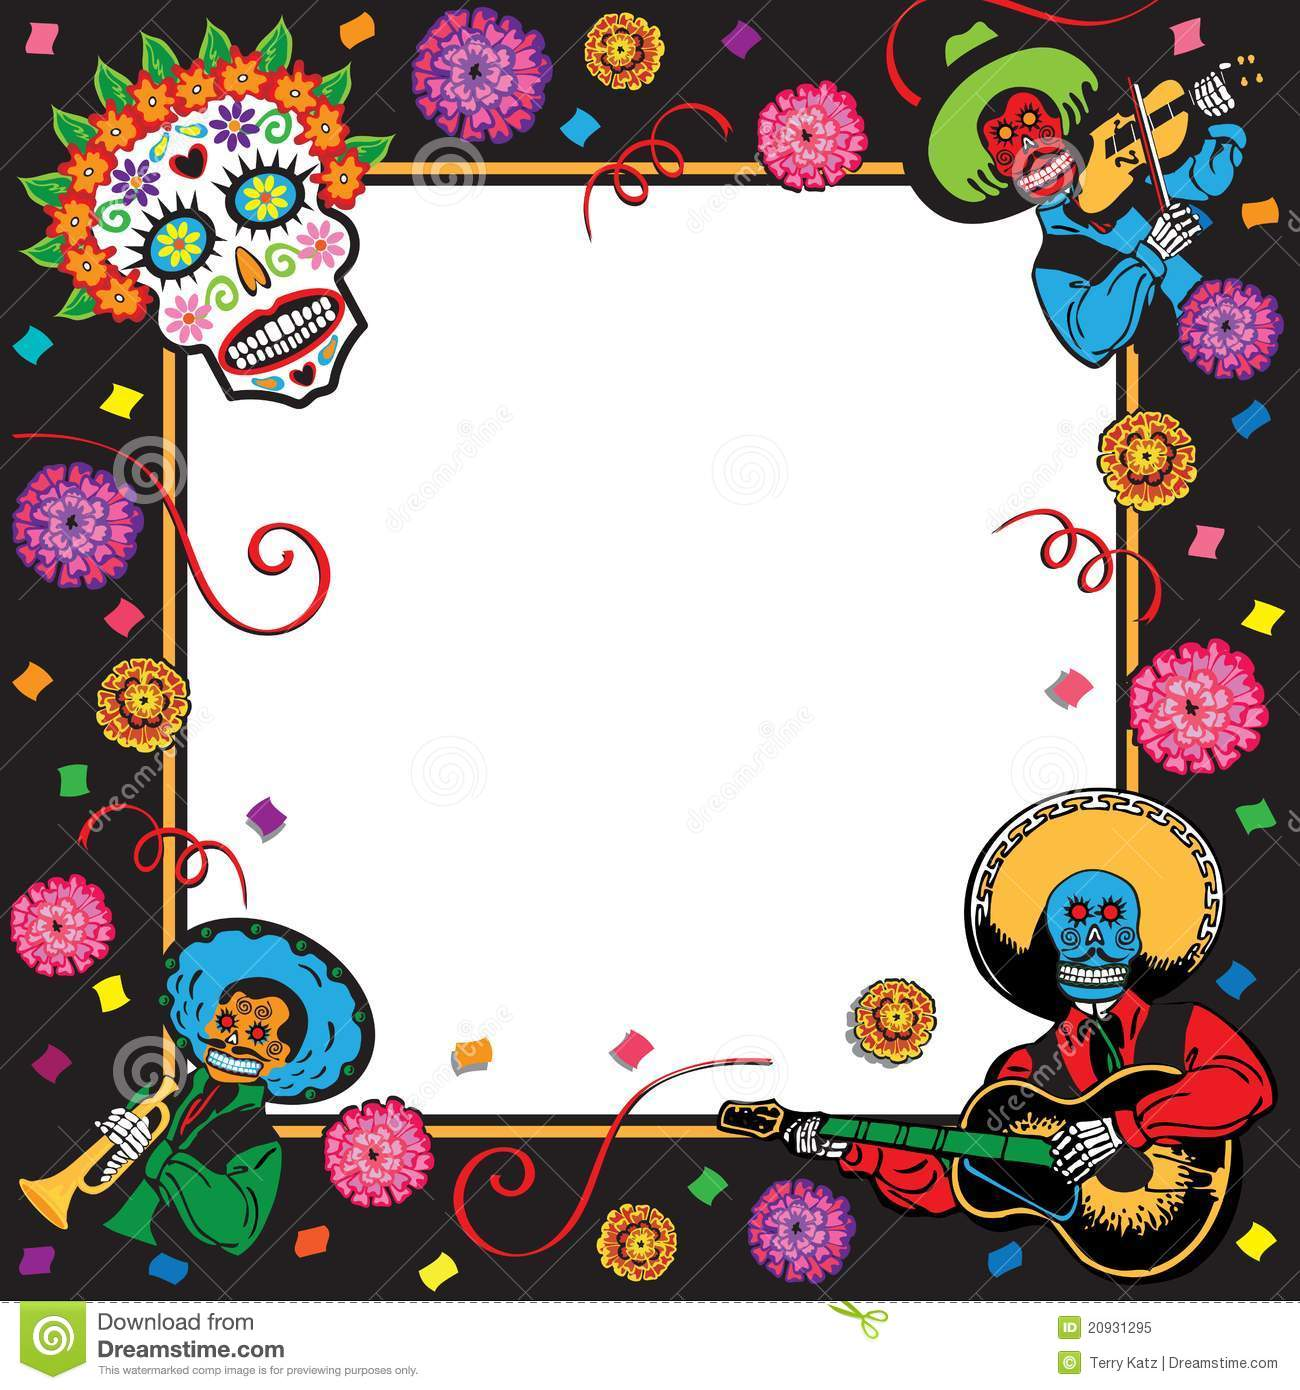 Day Of The Dead Party Invitation Stock Vector - Illustration of copy ...